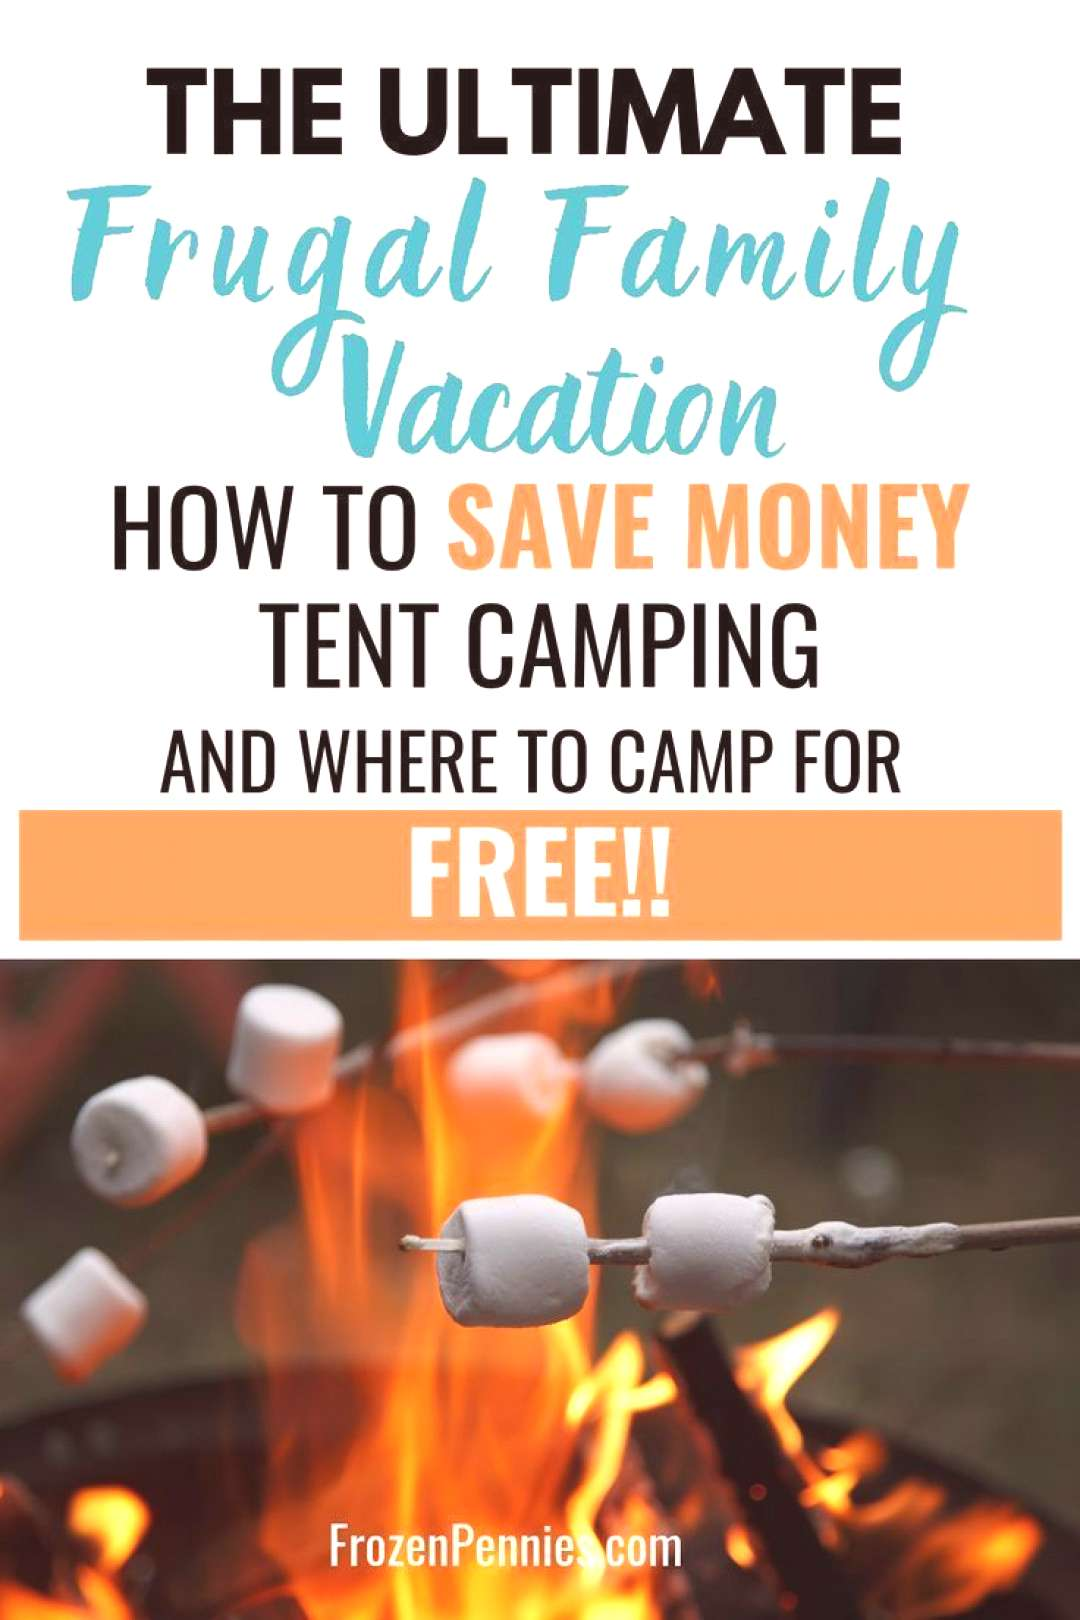 Camping: Plan The Ultimate Frugal Family Vacation - Frozen Pennies Camping: Plan The Ultimate Fruga